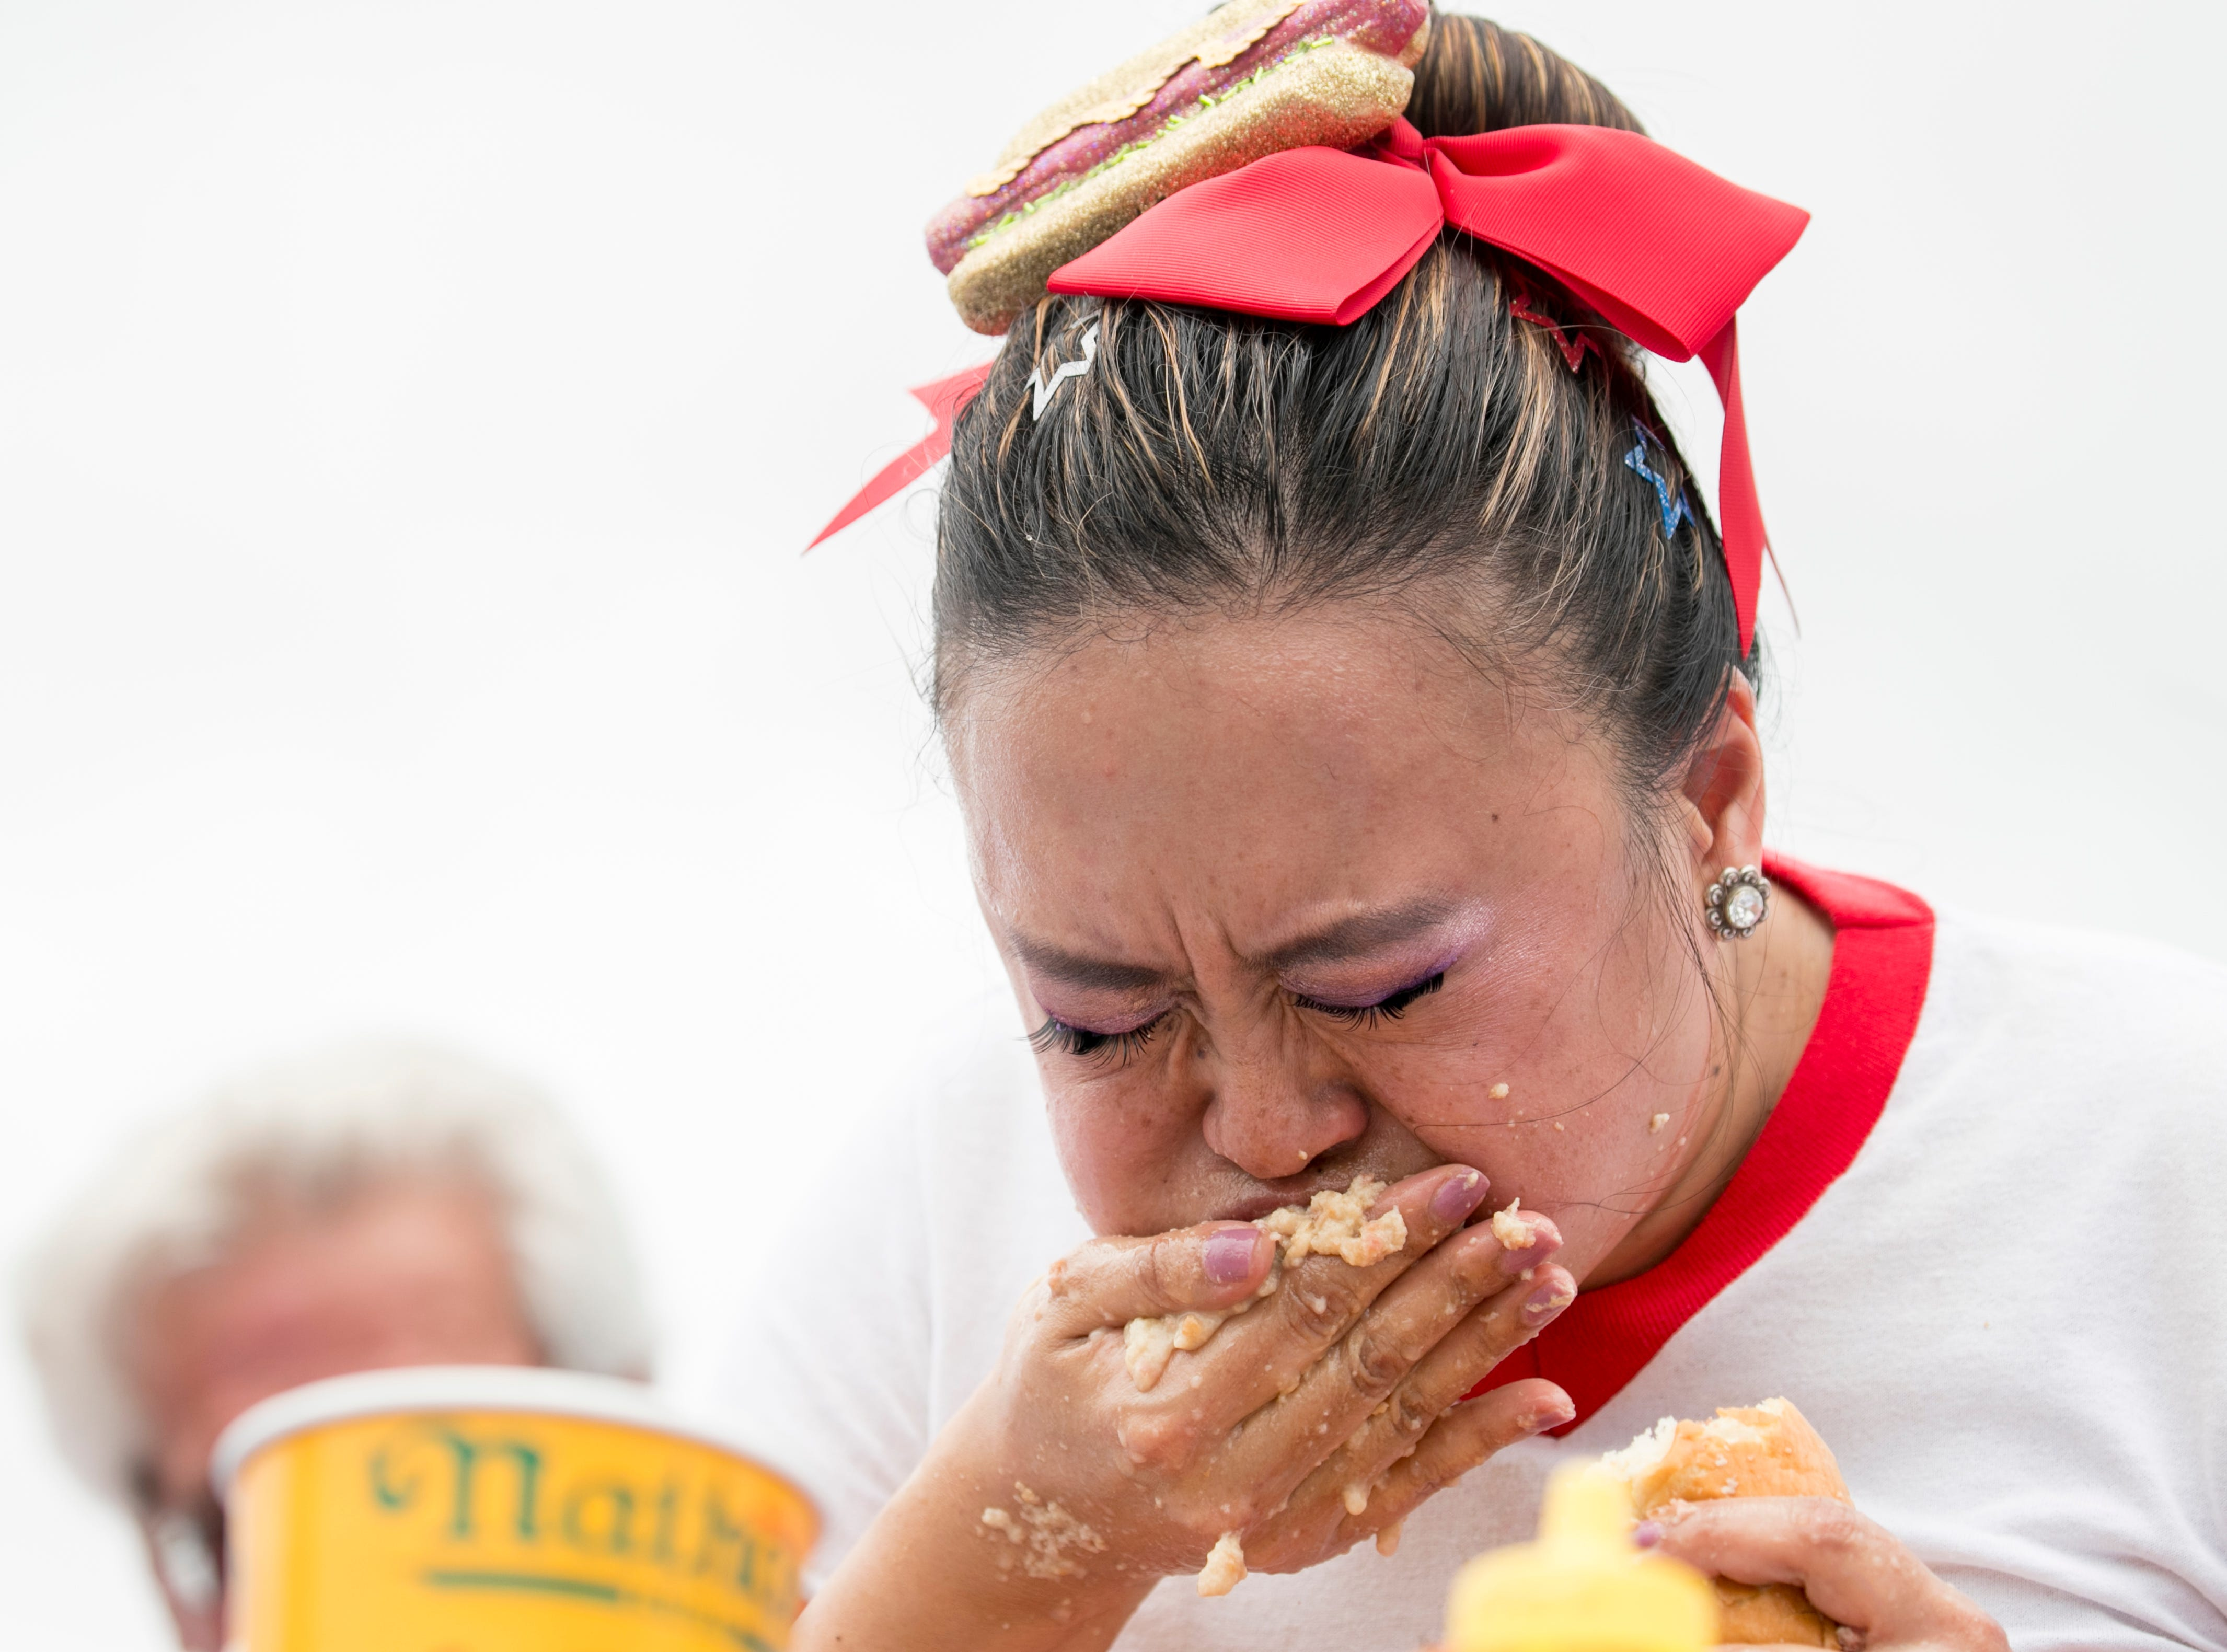 Mary Bowers eats in the Nathan's Famous Hot Dog Eating Contest on Saturday, April 13, 2019, in Cape Coral. Bowers was the first place woman and qualified to compete in the 2019 Nathan's Famous Fourth of July International Hot Dog-Eating Contest.